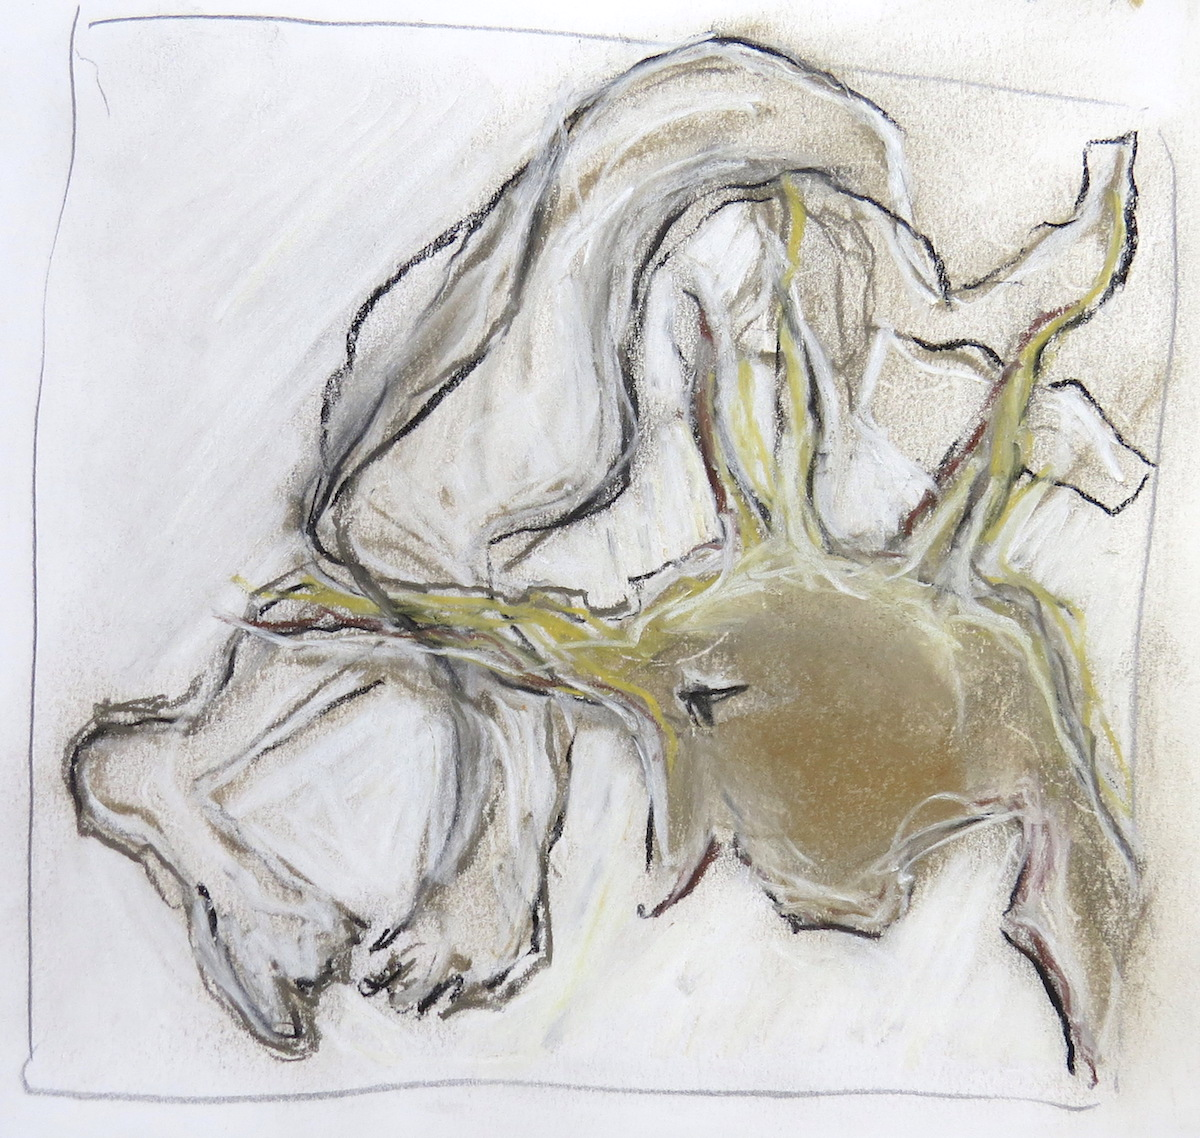 studio sketch on paper, Canadian contemporary artist barbra edwards, gulf islands